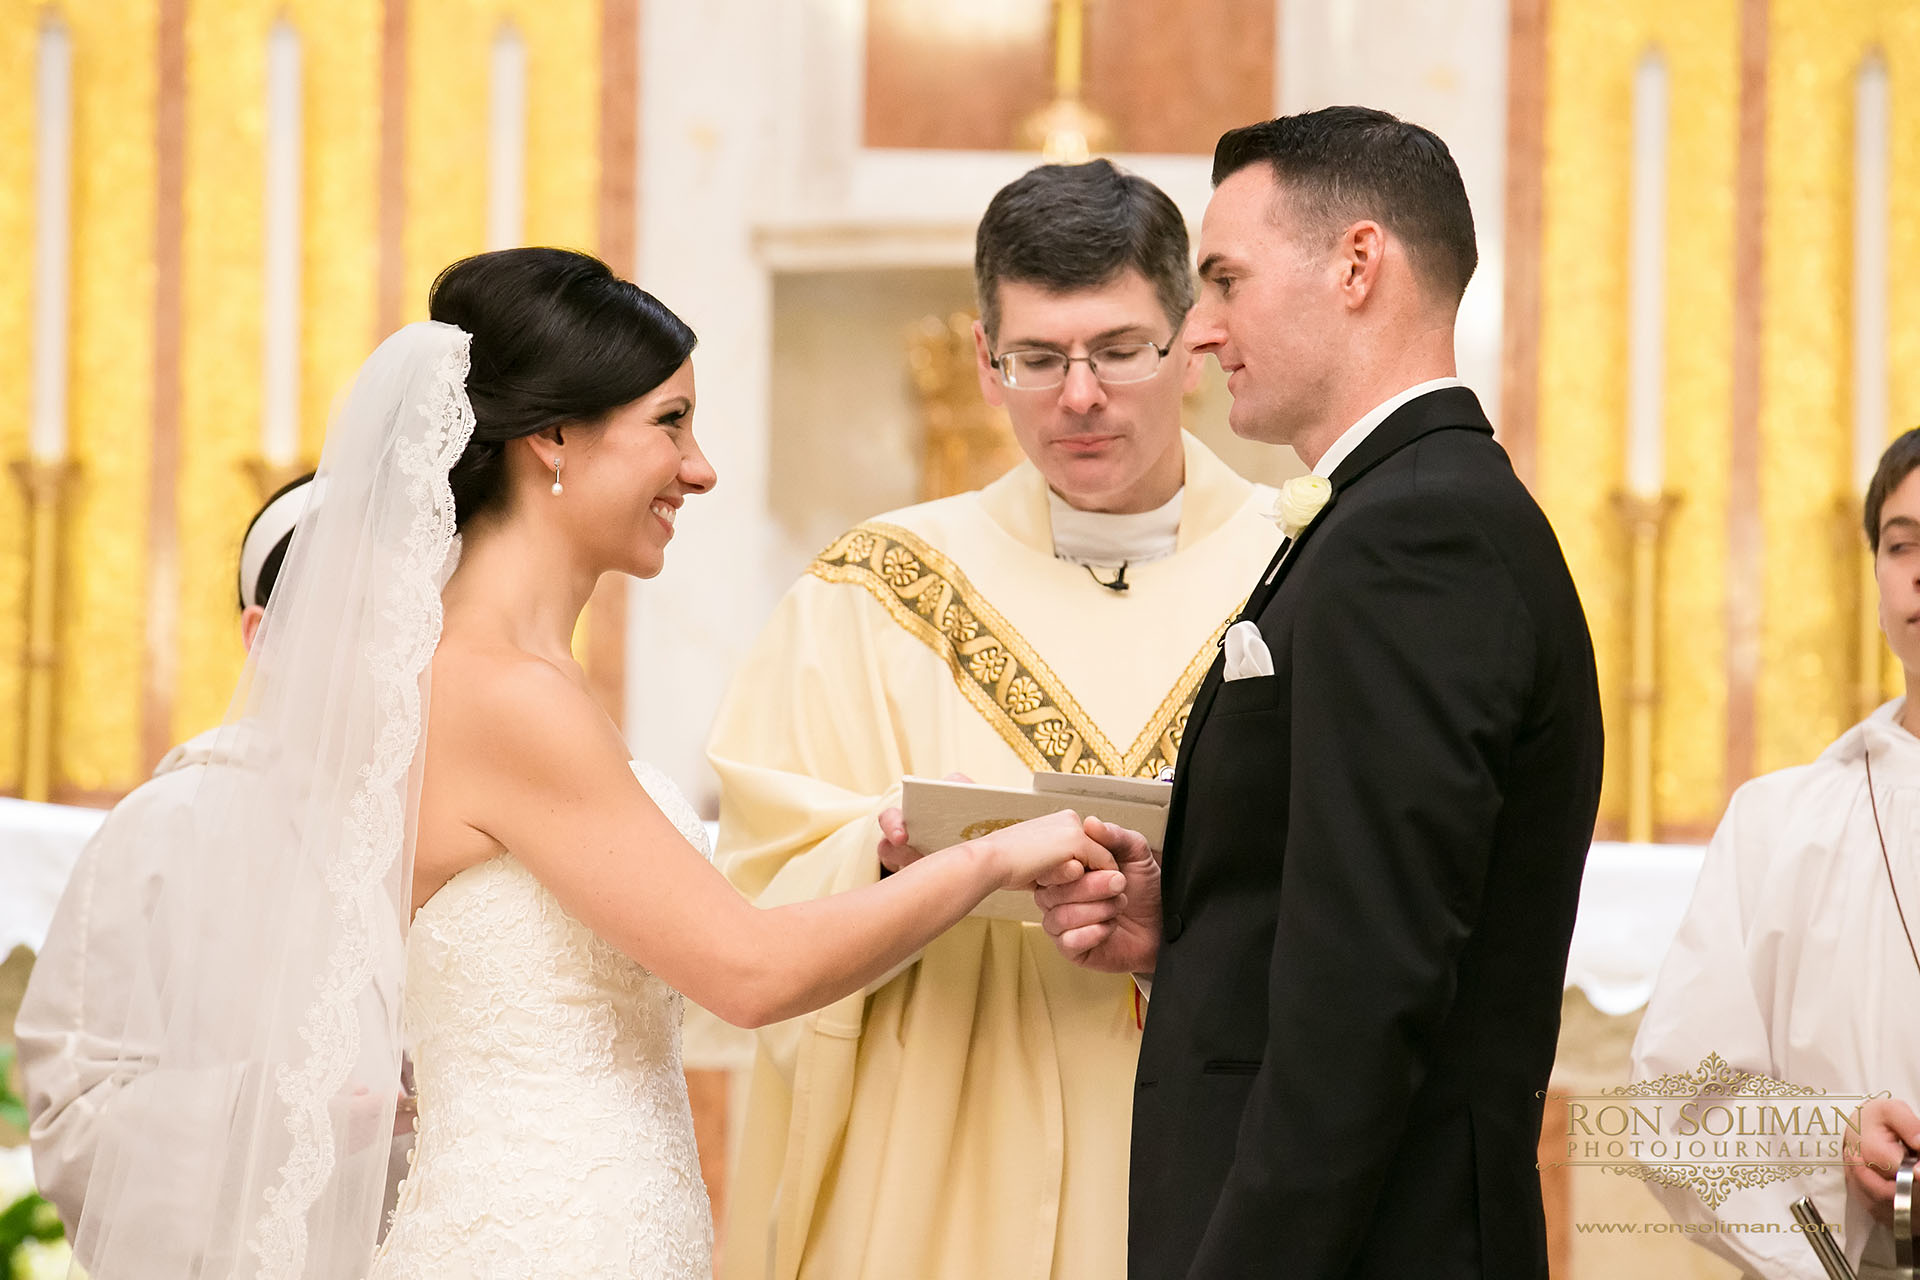 Saint Francis of Assisi Parish Springfield, PA wedding